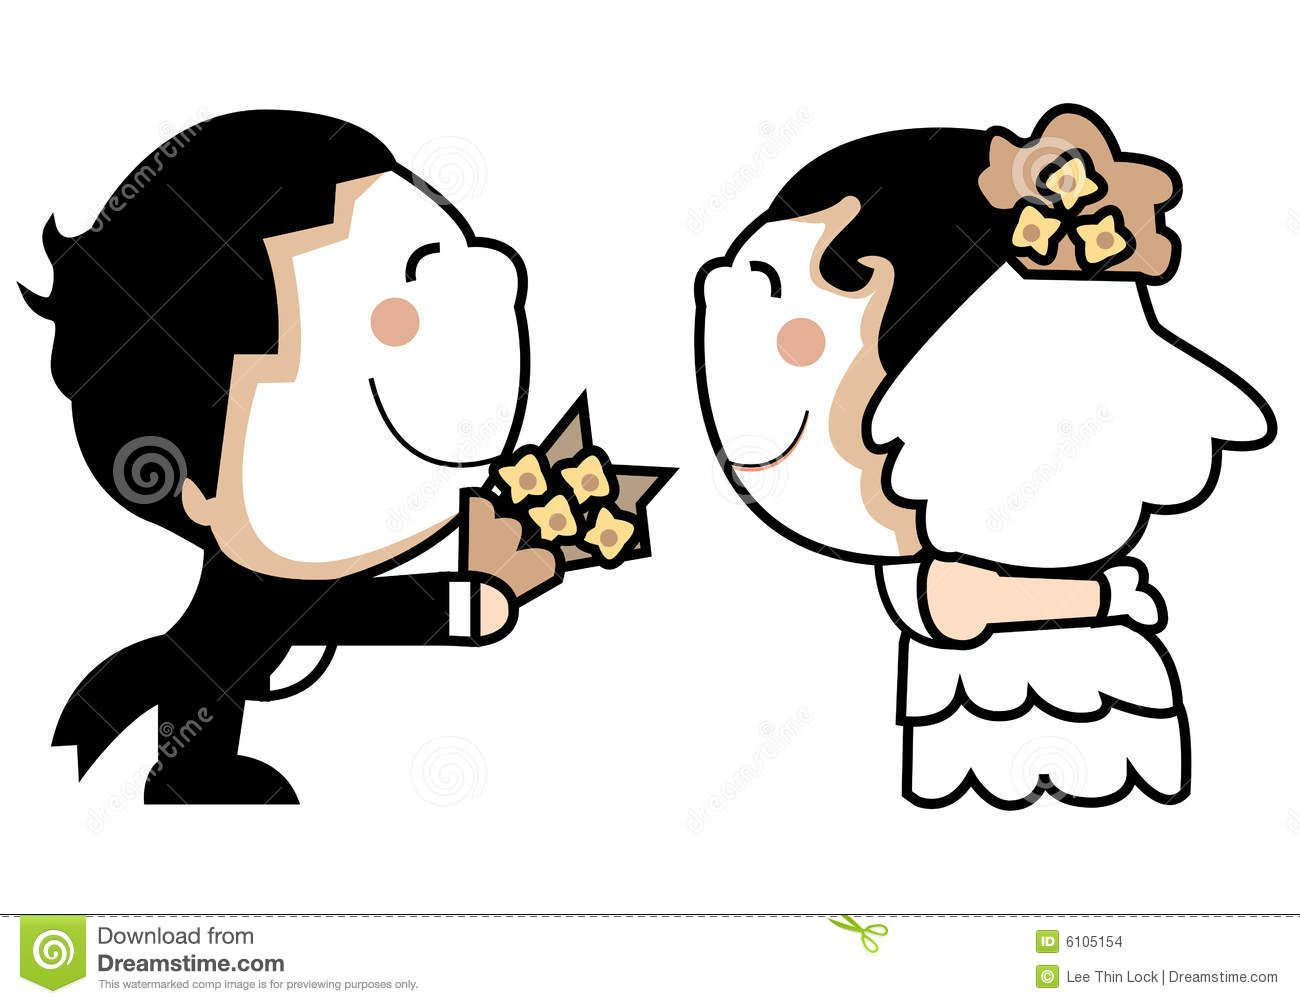 Couple shirt design download